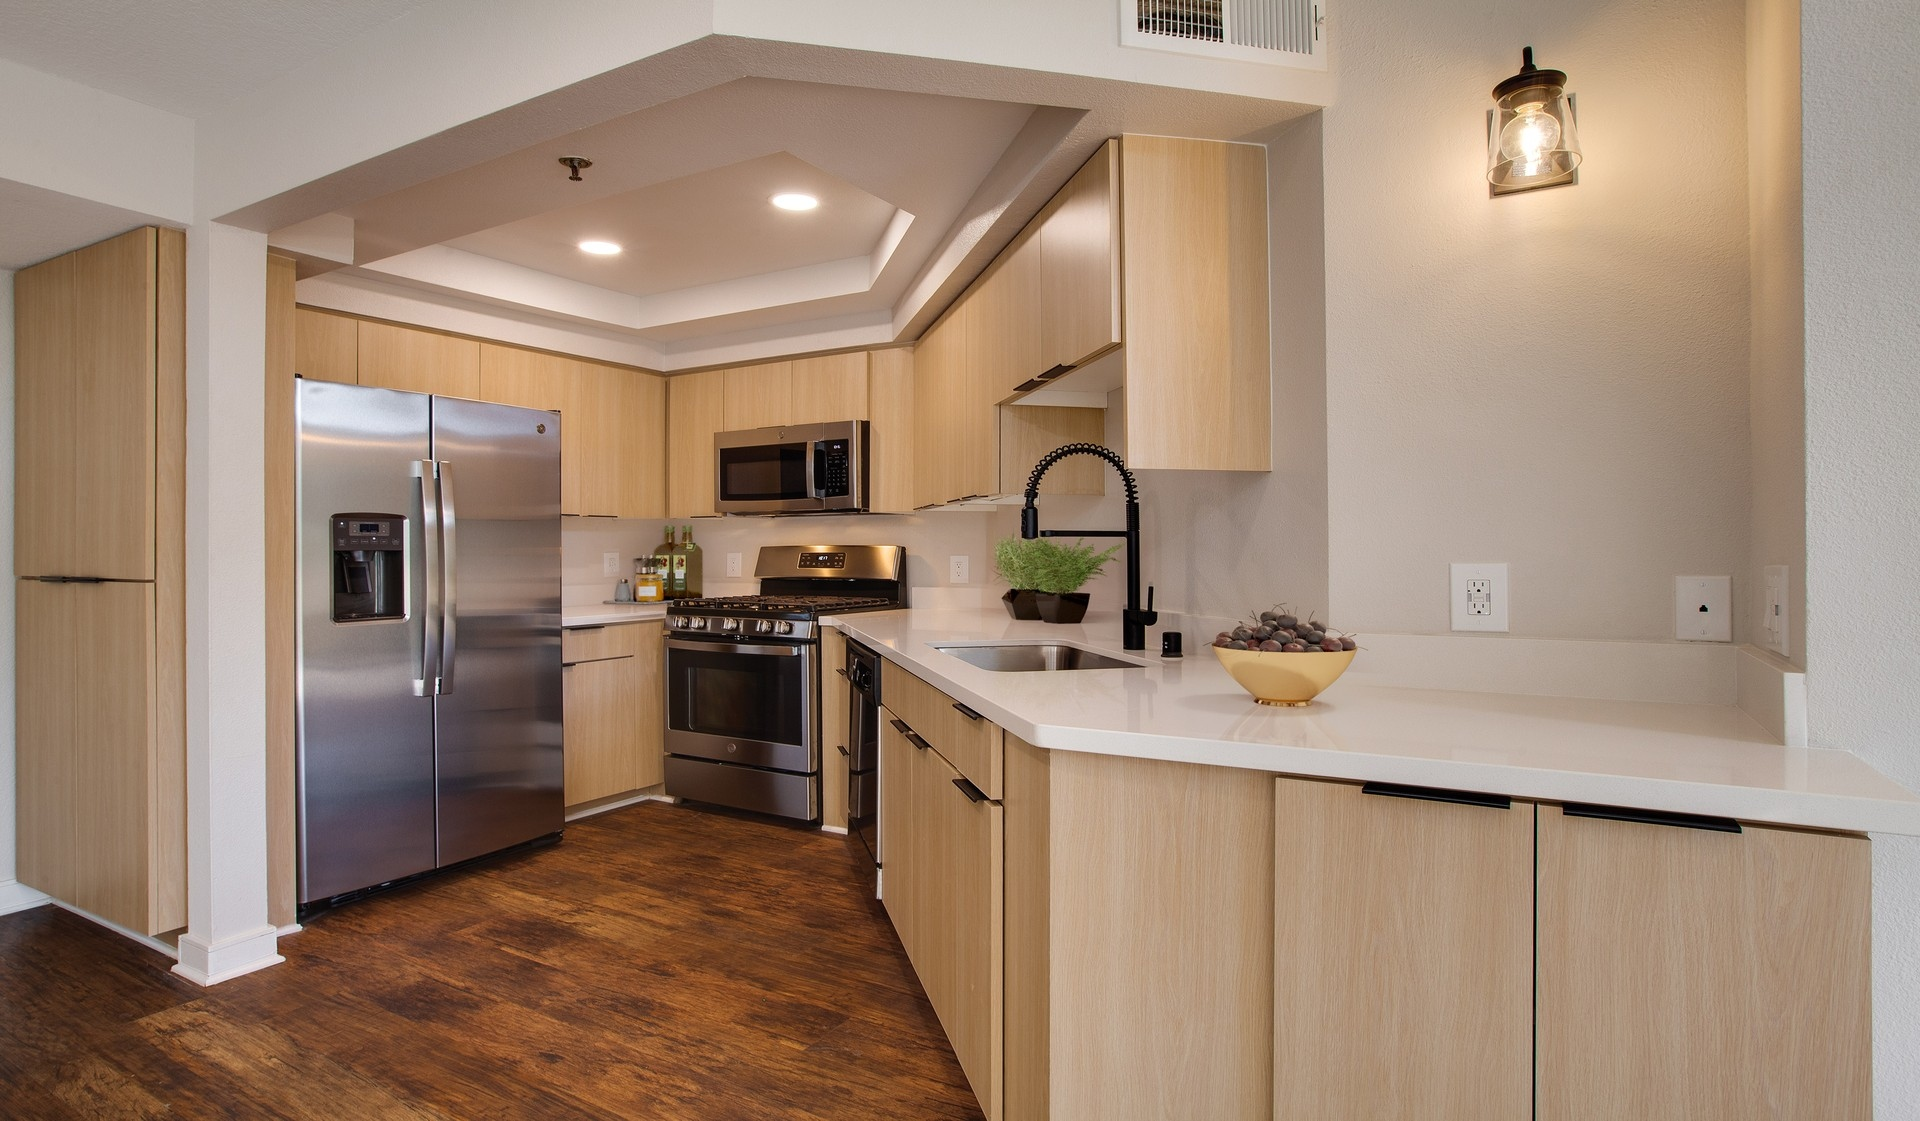 Broadcast Center Apartments in Los Angeles, CA - Upgraded Kitchen